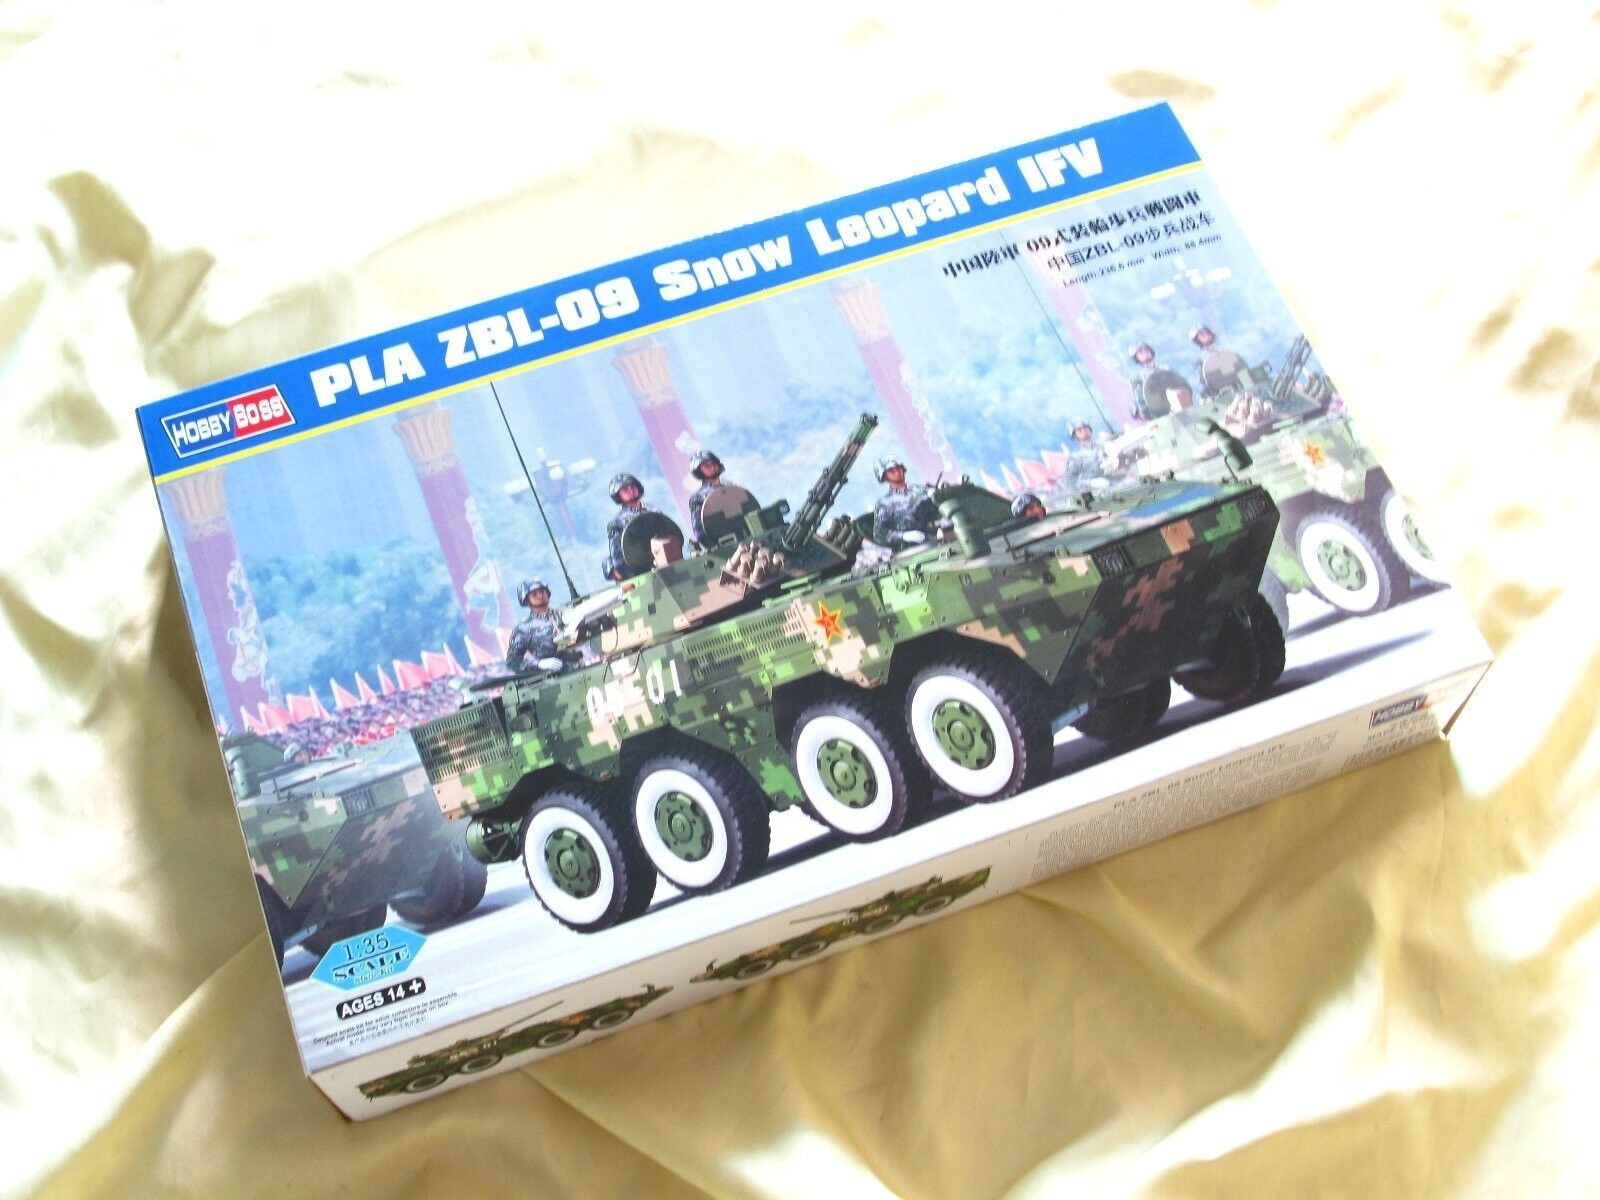 82486 Hobby Boss 1 35 Model PLA ZBL-09 Snow Leopard Infantry Fighting Vehicle